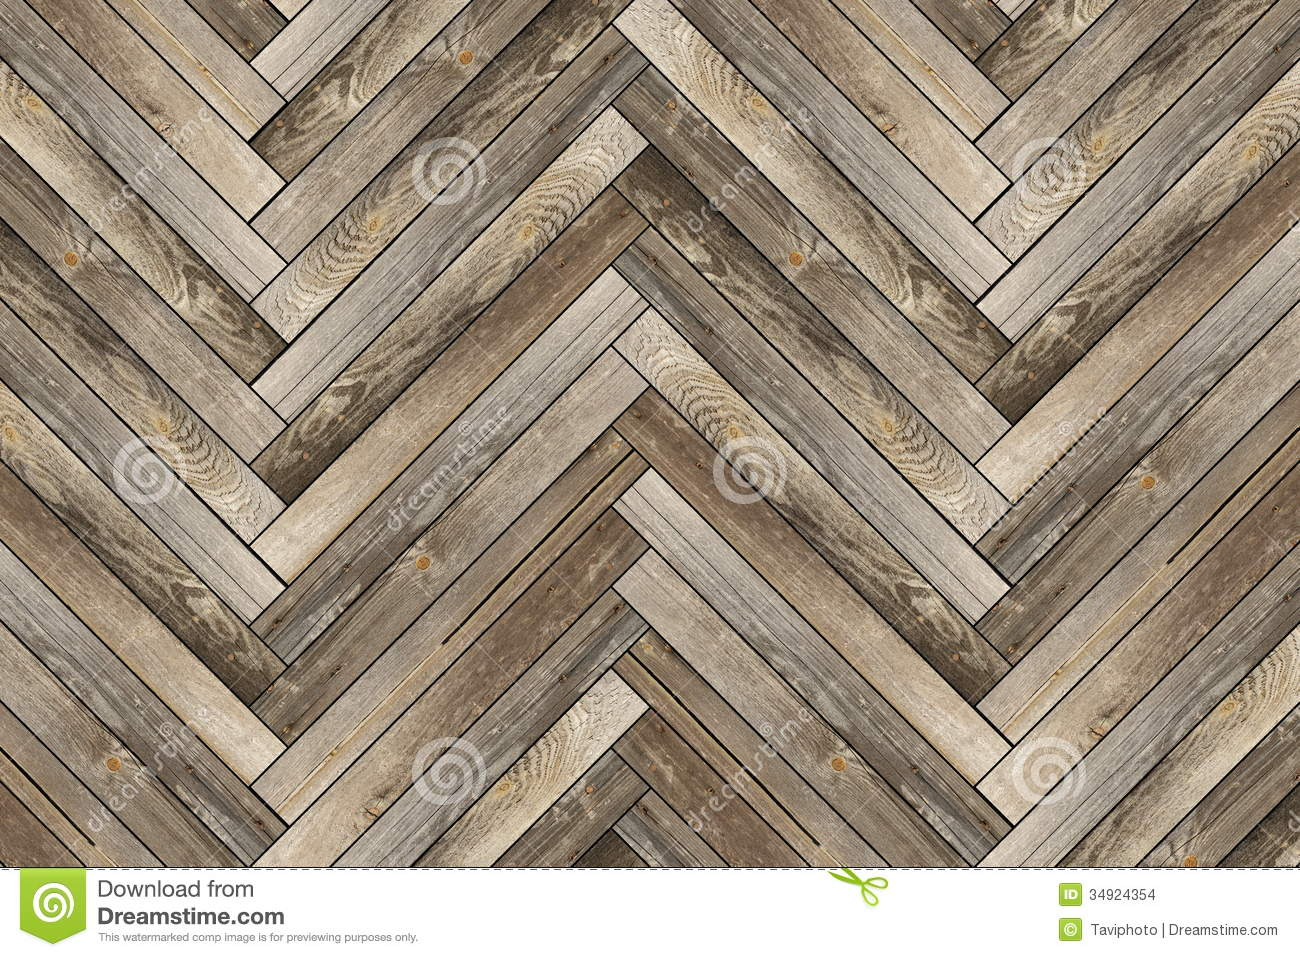 Pattern of old wood tiles stock photo image of grunge 34924354 Wood pattern tile